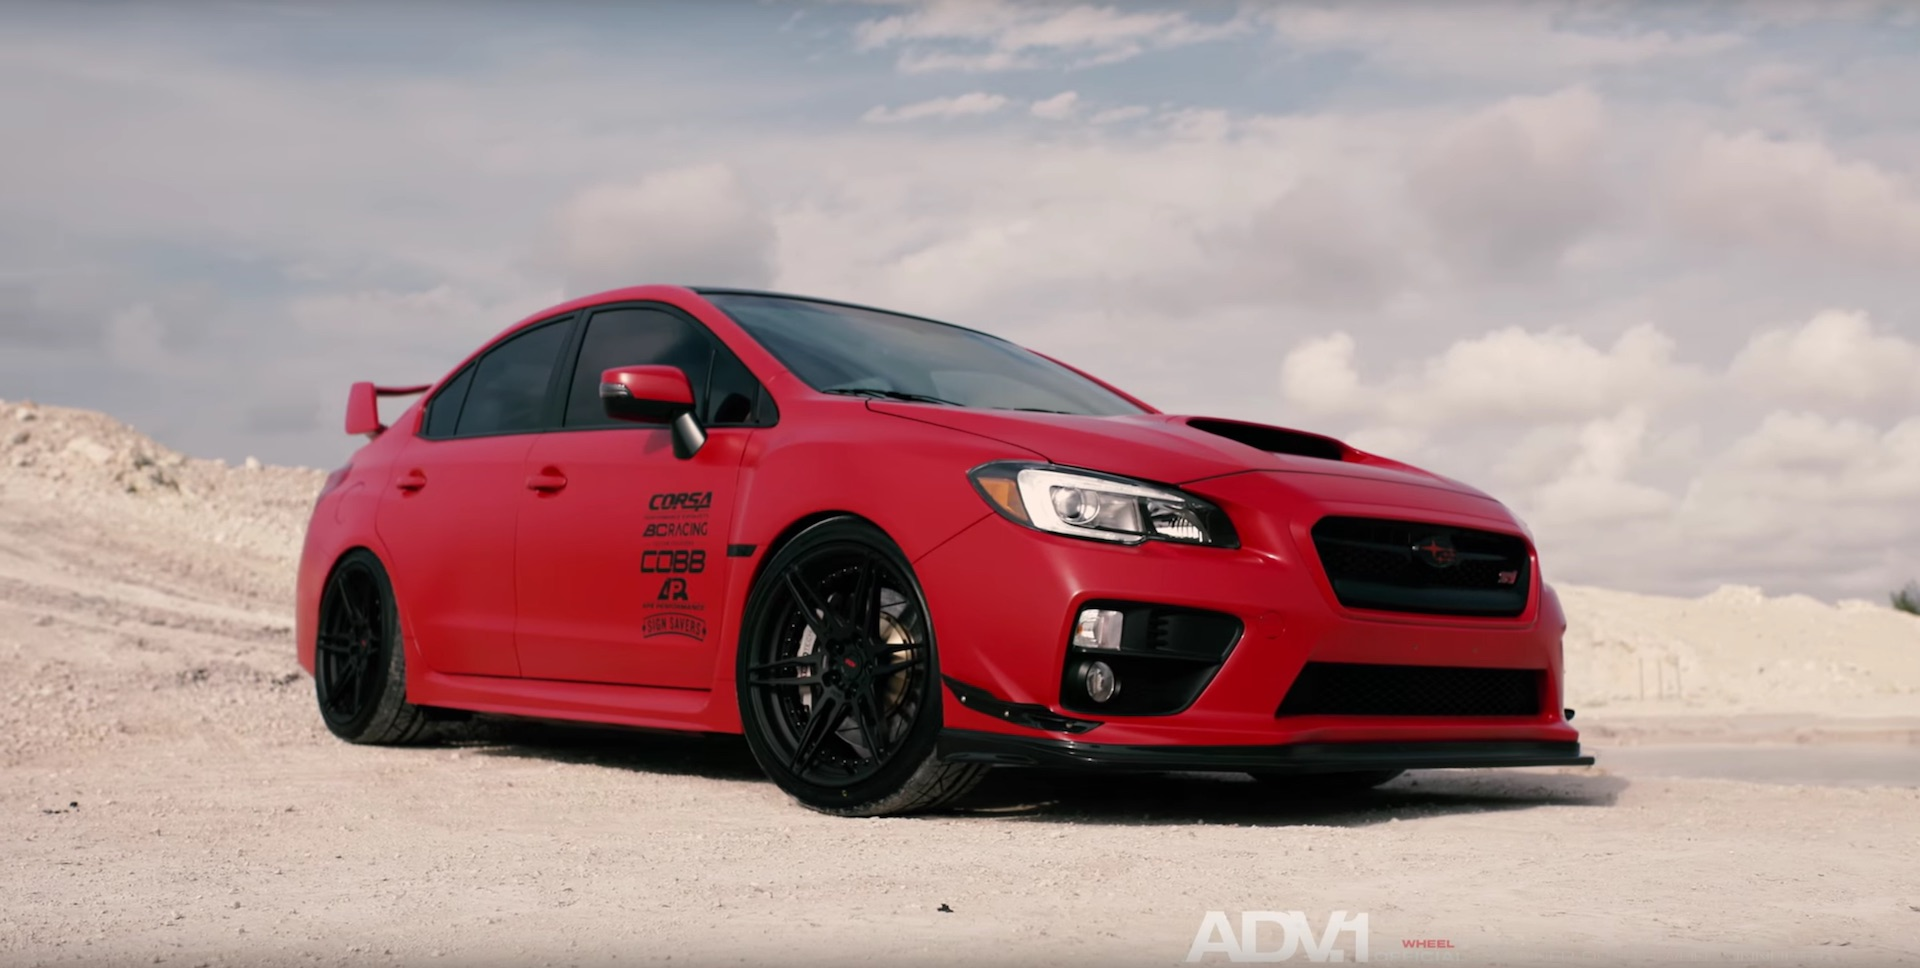 Matte Red Subaru Wrx Sti With Adv 1 Wheels Damnedwerk